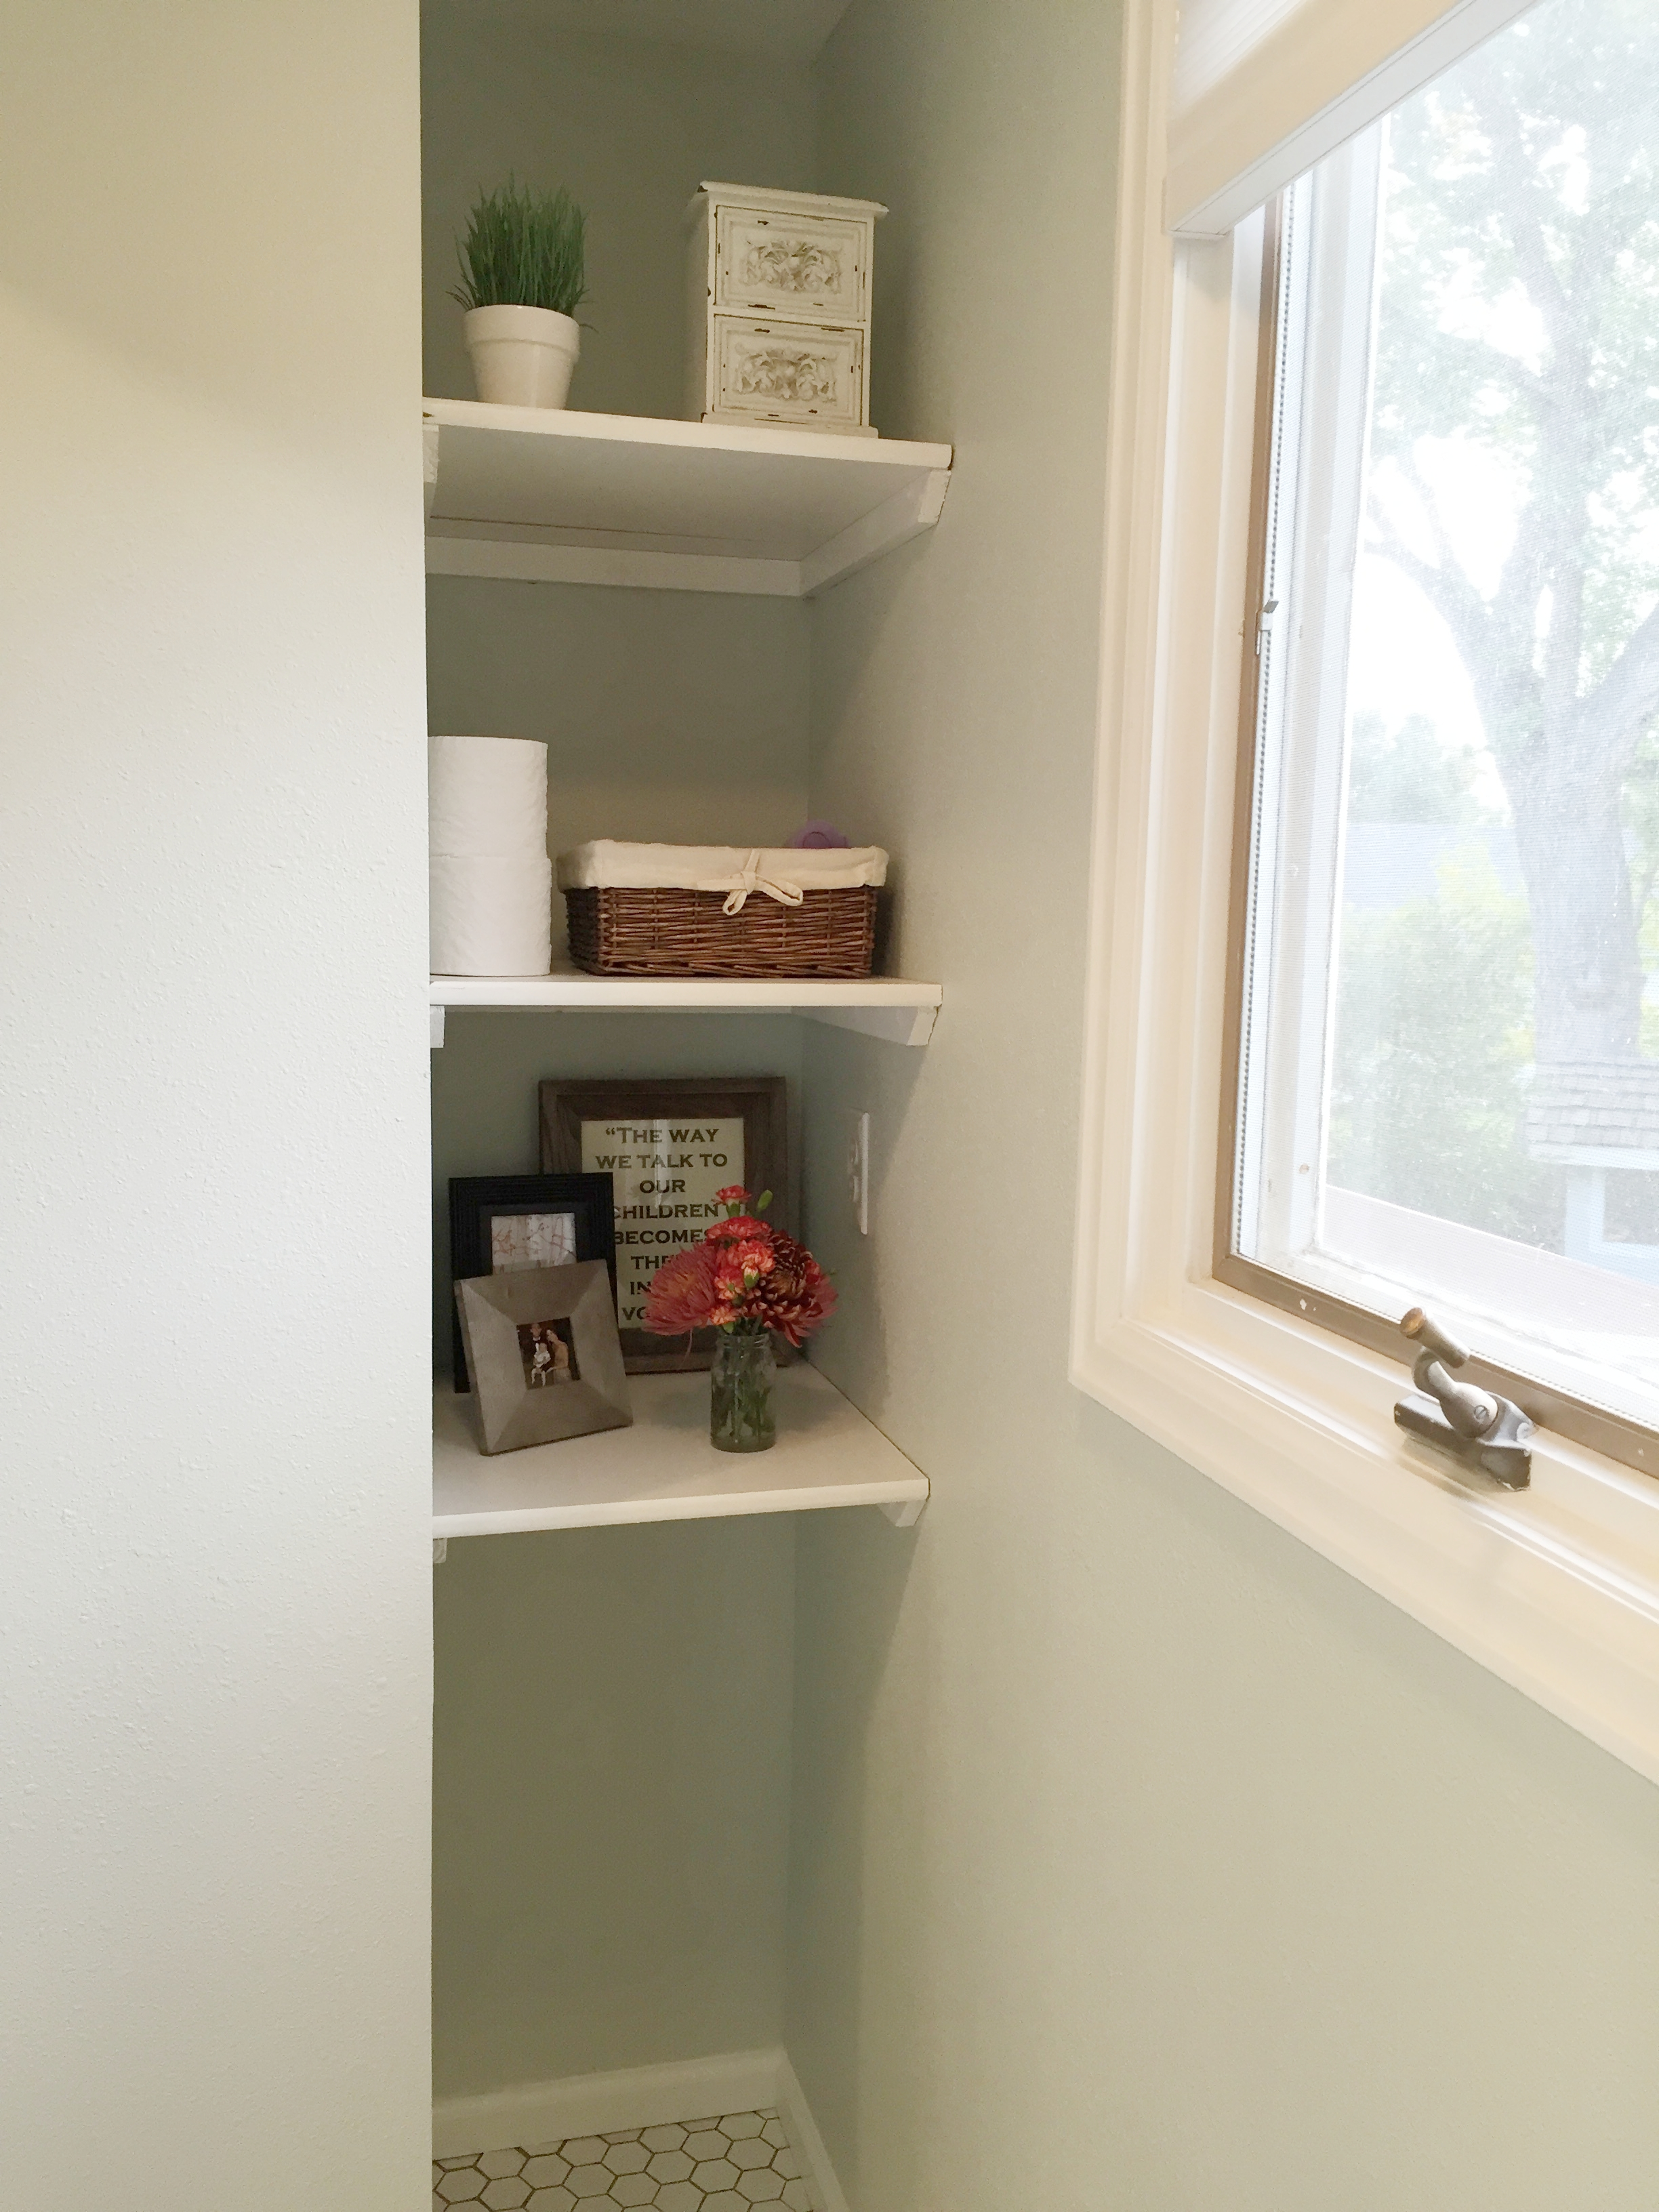 We added shelving into the nooks of this bathroom to maximize storage space.